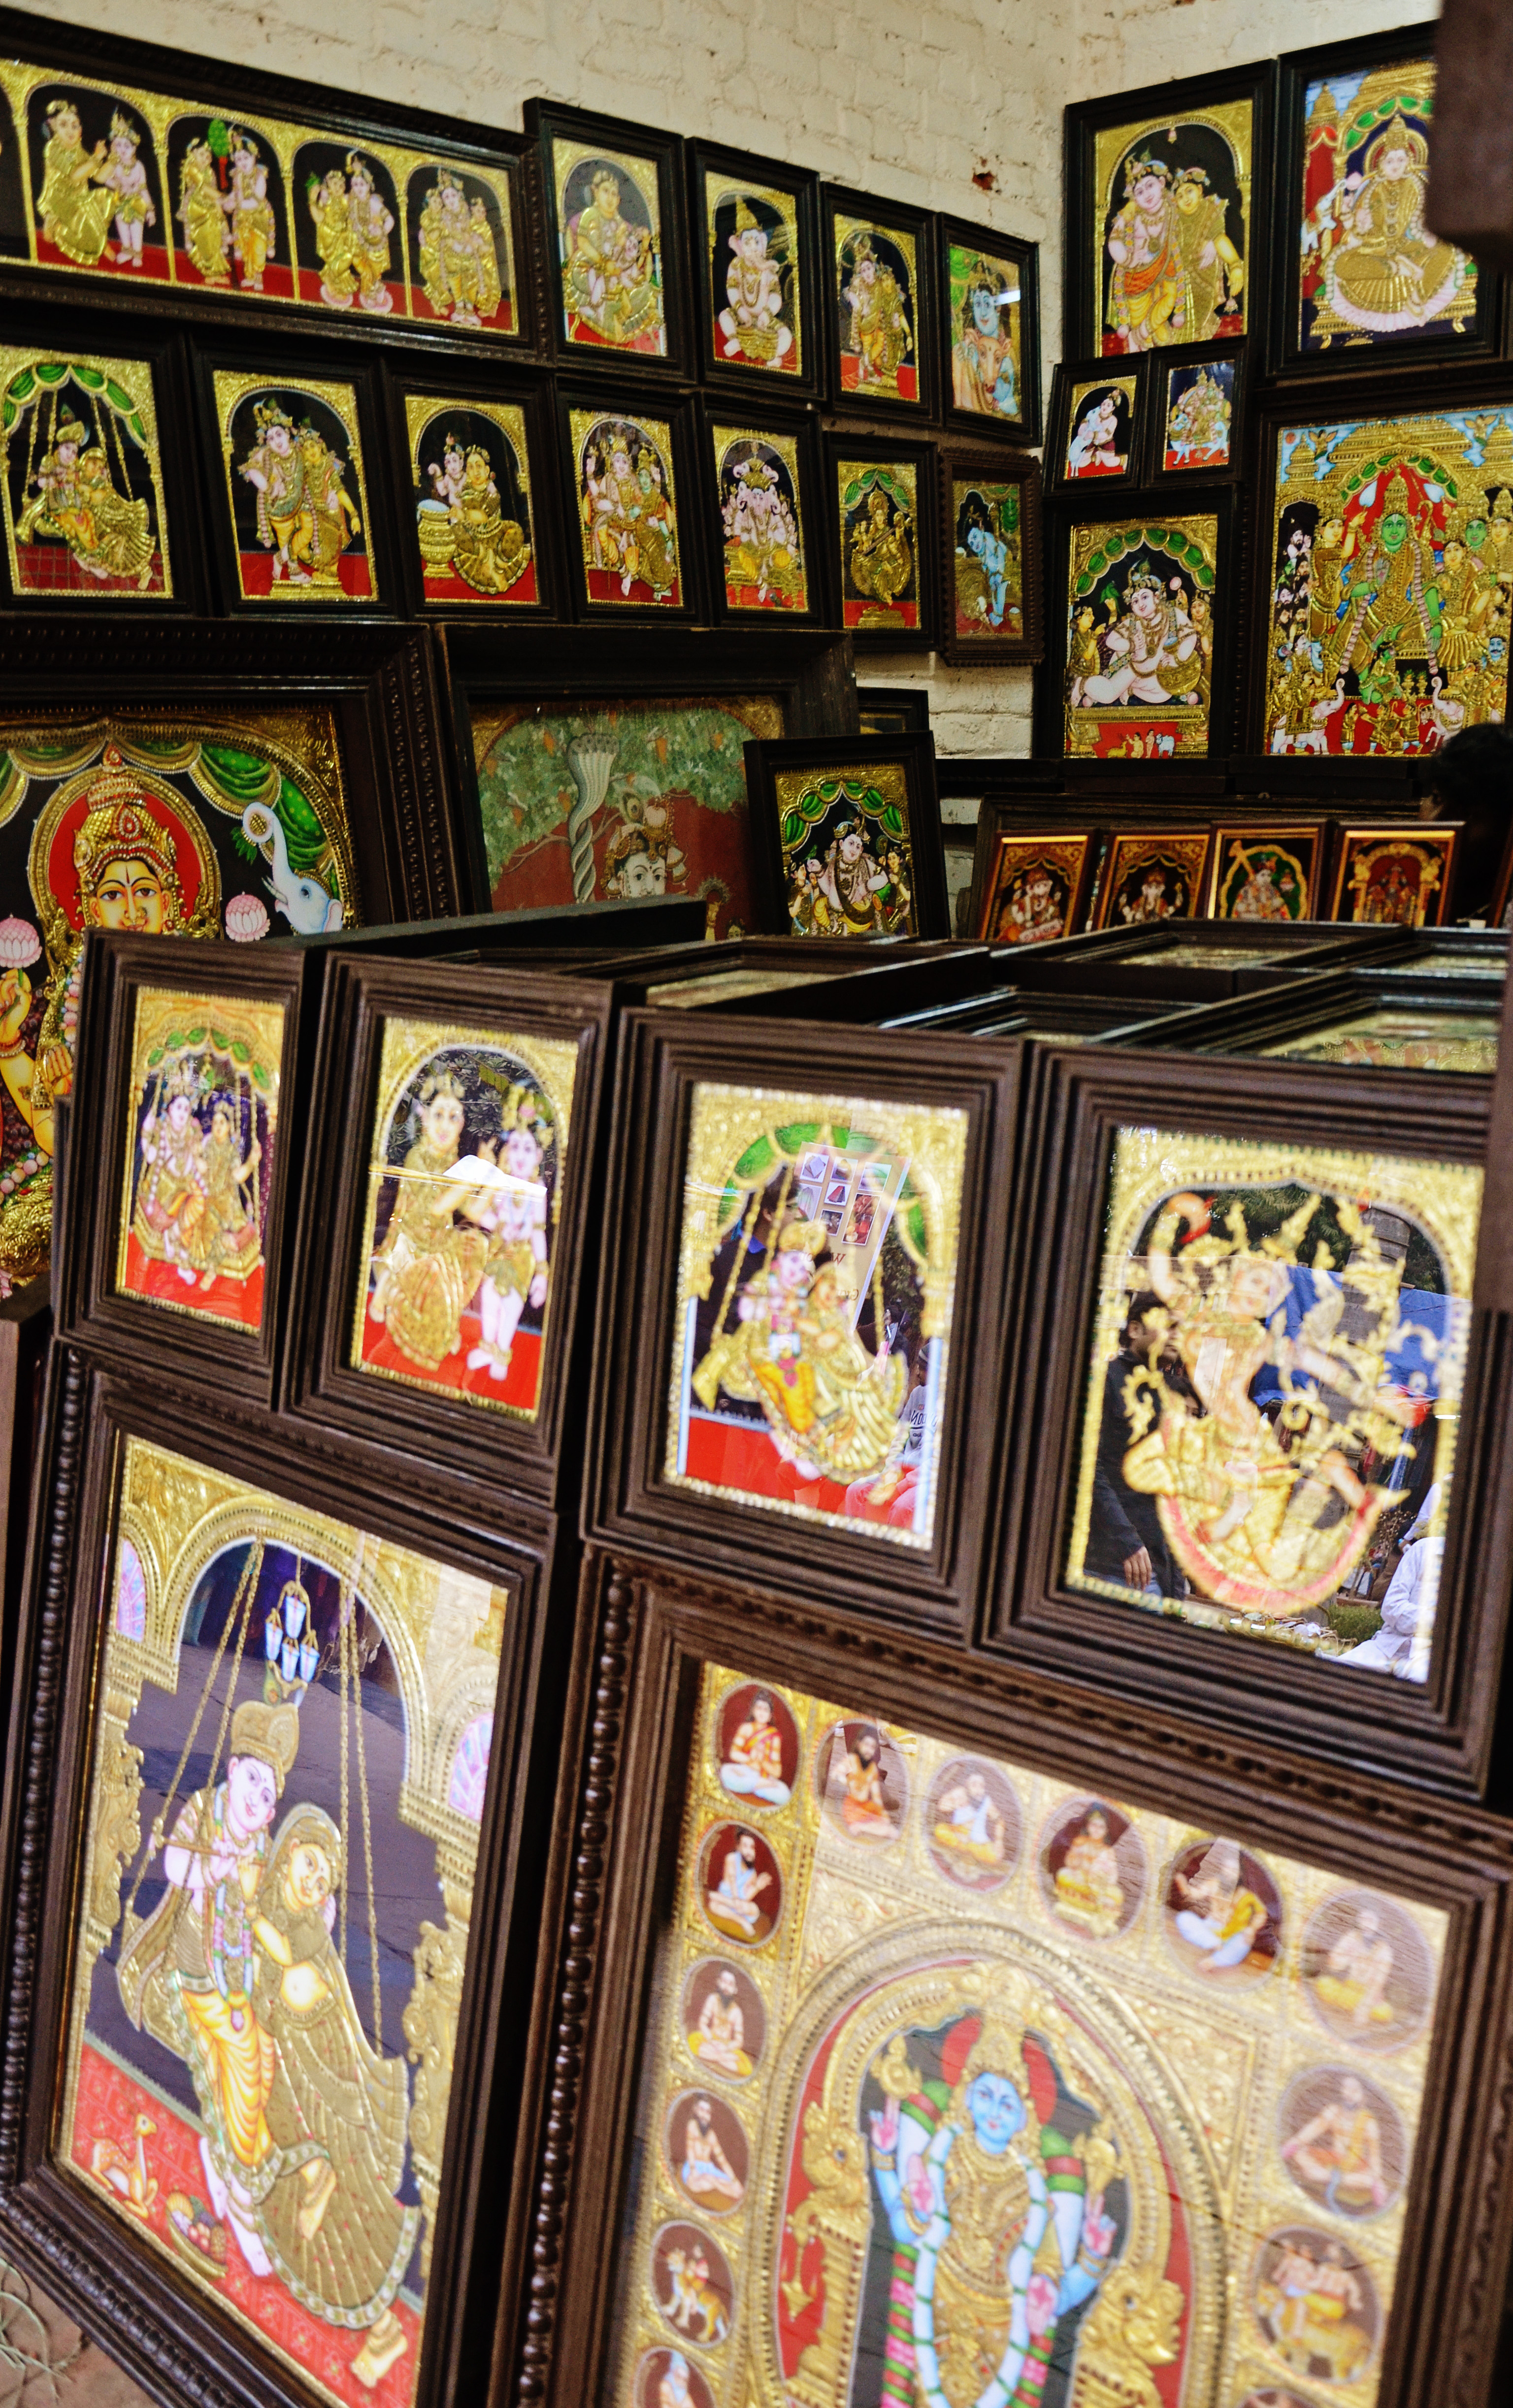 File:Tanjore paintings being sold at Dilli Haat.JPG ...